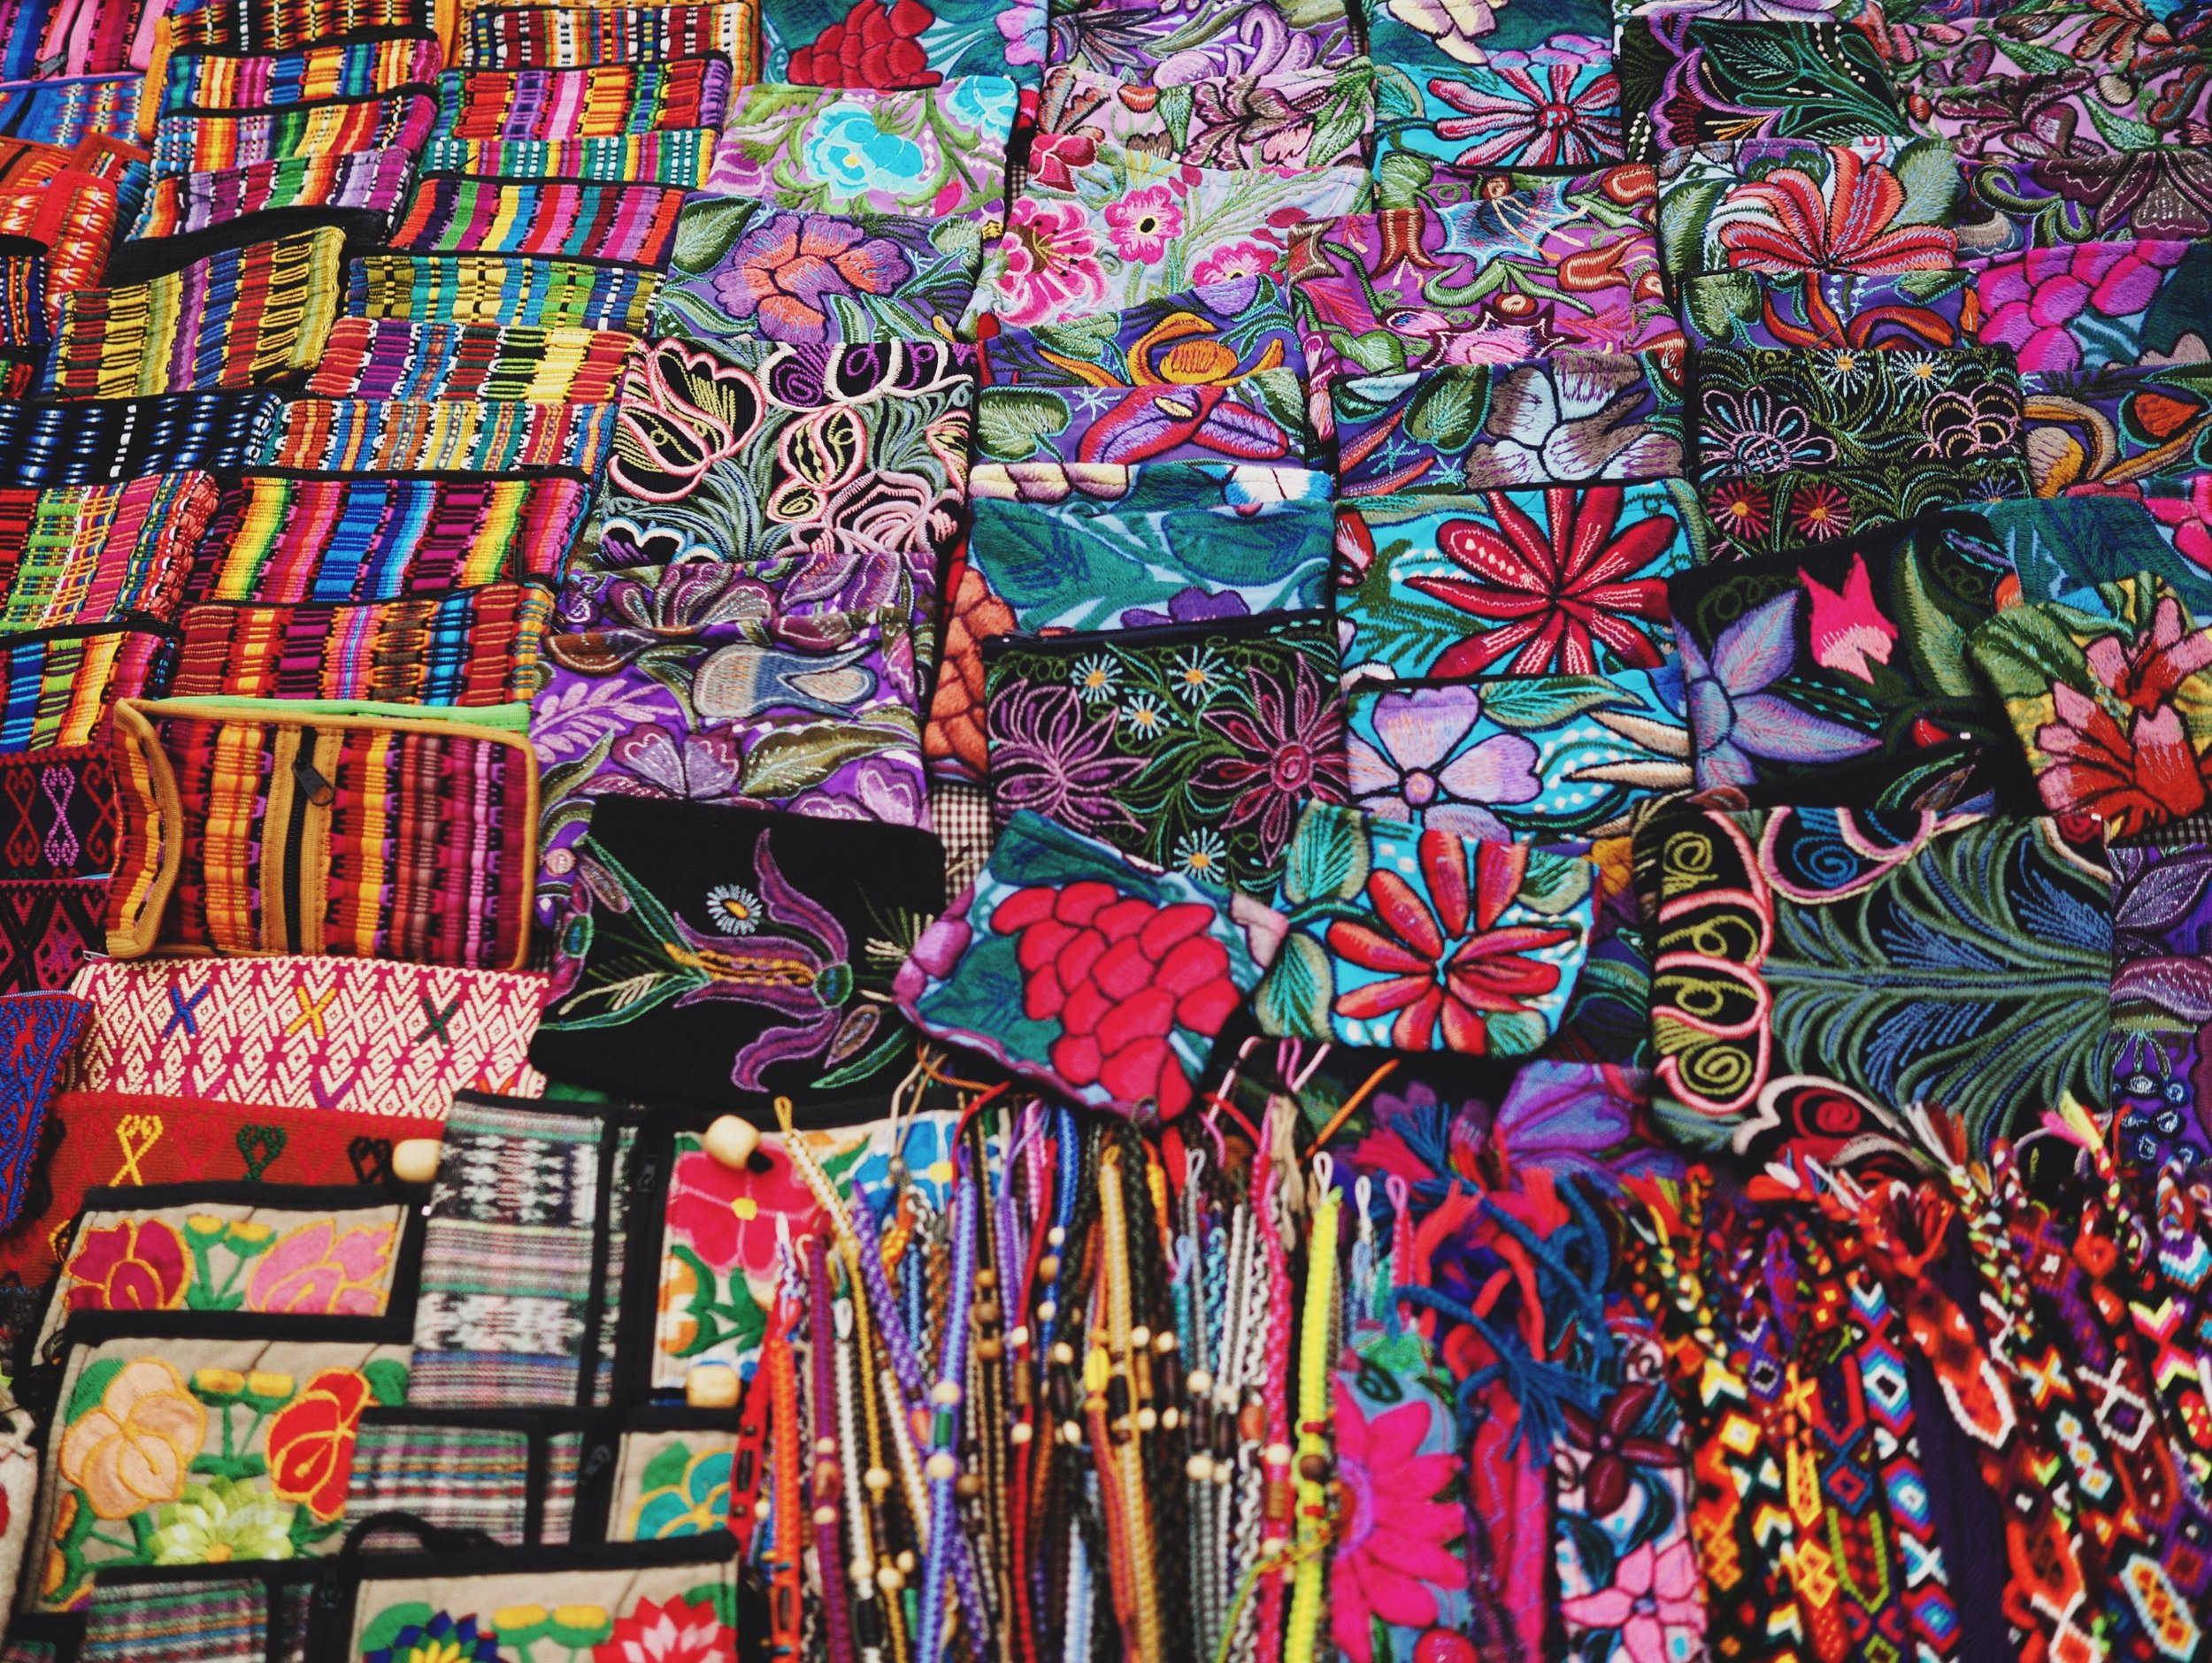 The plethora of artisan work you'll find in Chiapas